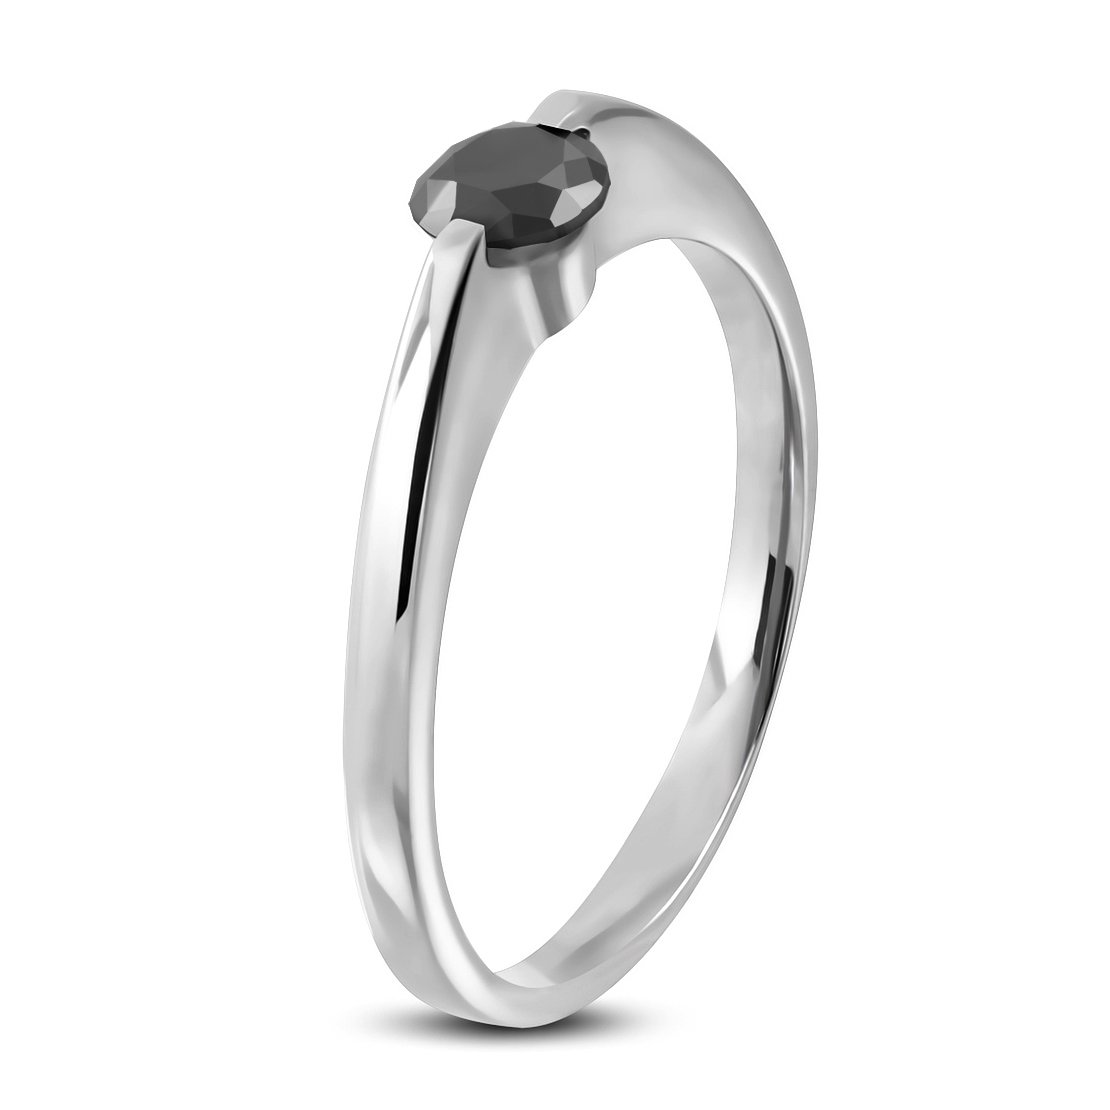 Stainless Steel Compression-Set Round Solitaire Engagement Ring with Jet Black CZ